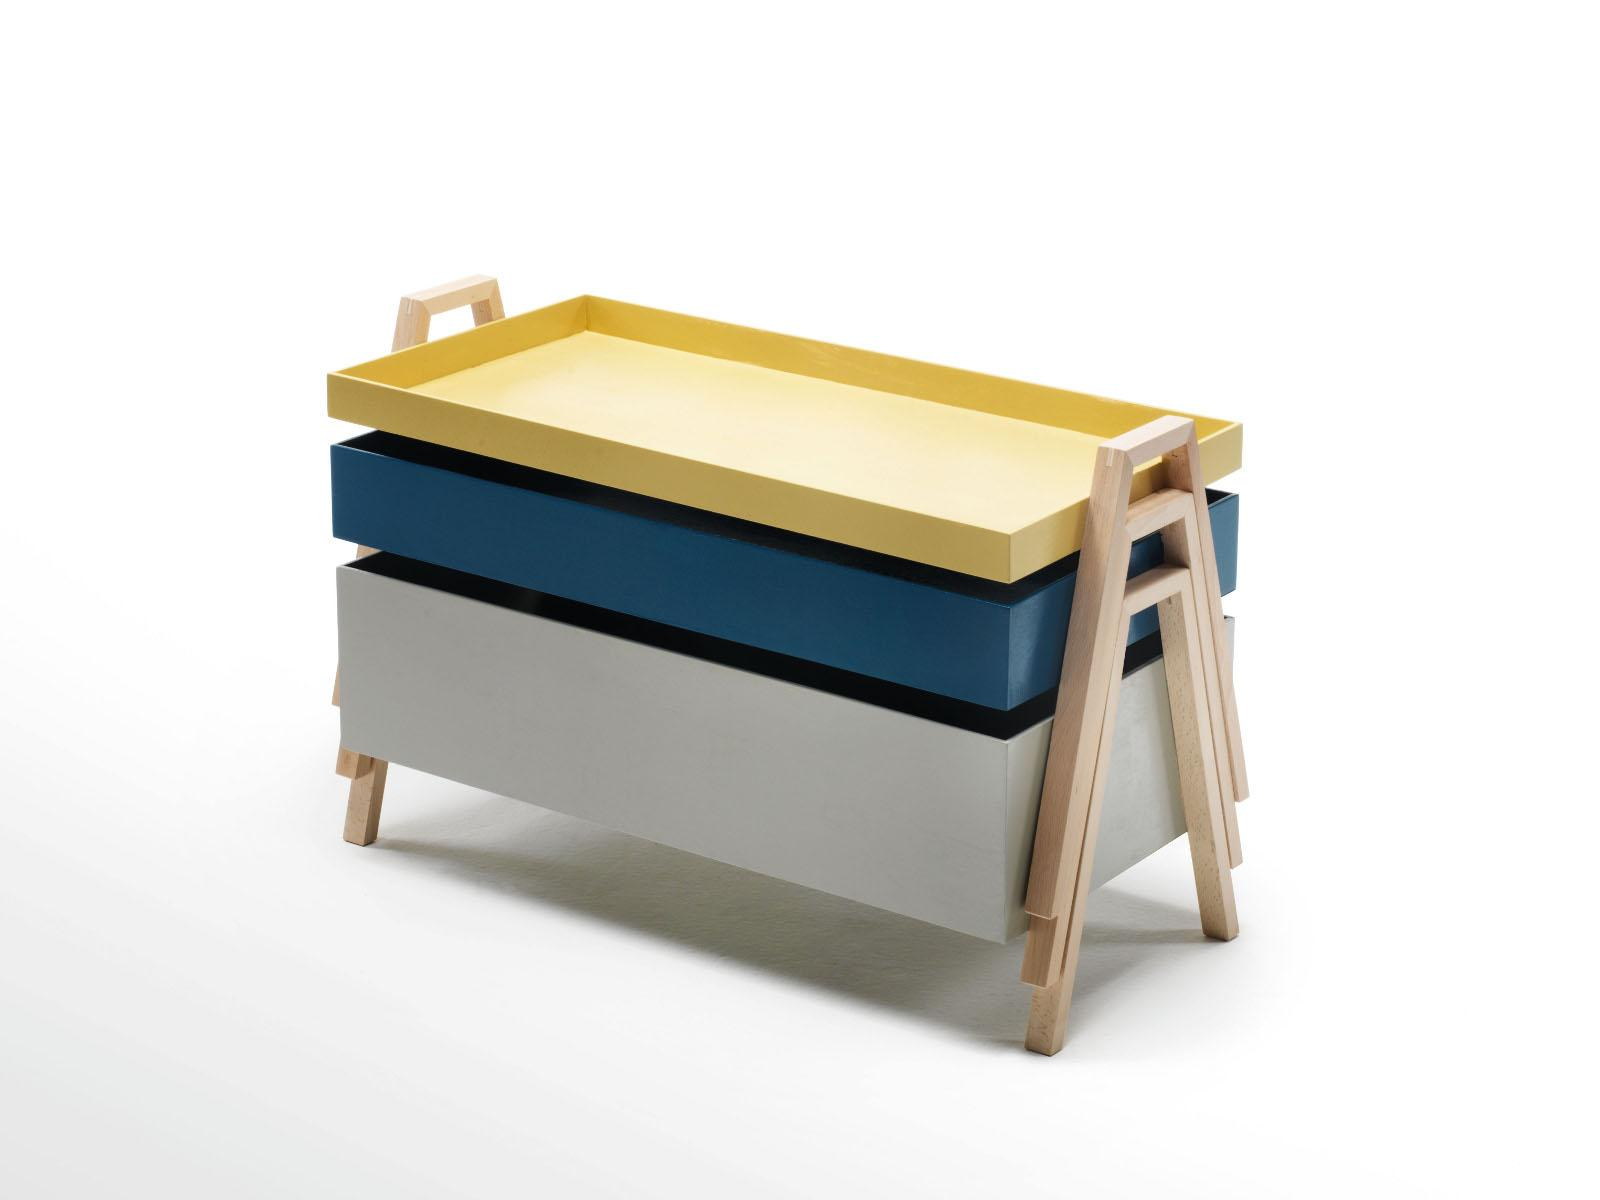 STACKABLE WOODEN COFFEE TABLE STACK TABLE BY LIVING DIVANI